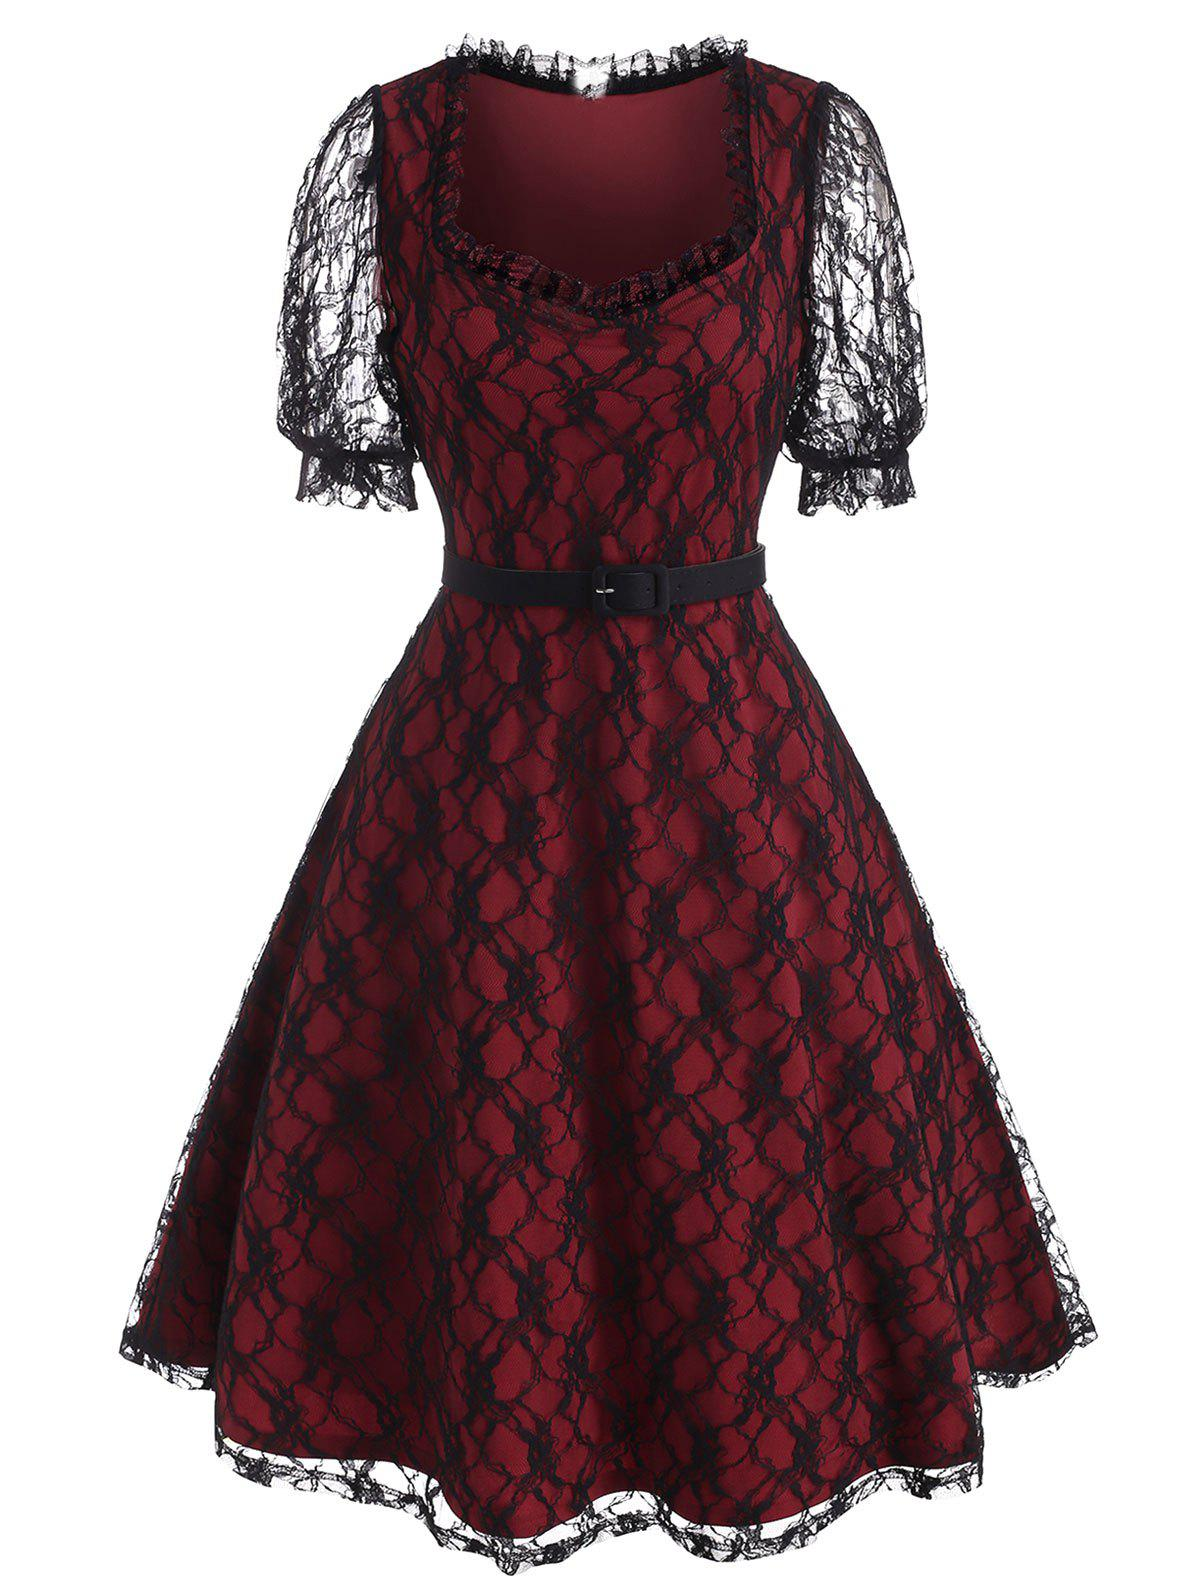 Puff Sleeve Overlay Lace Mid Calf Dress - RED S